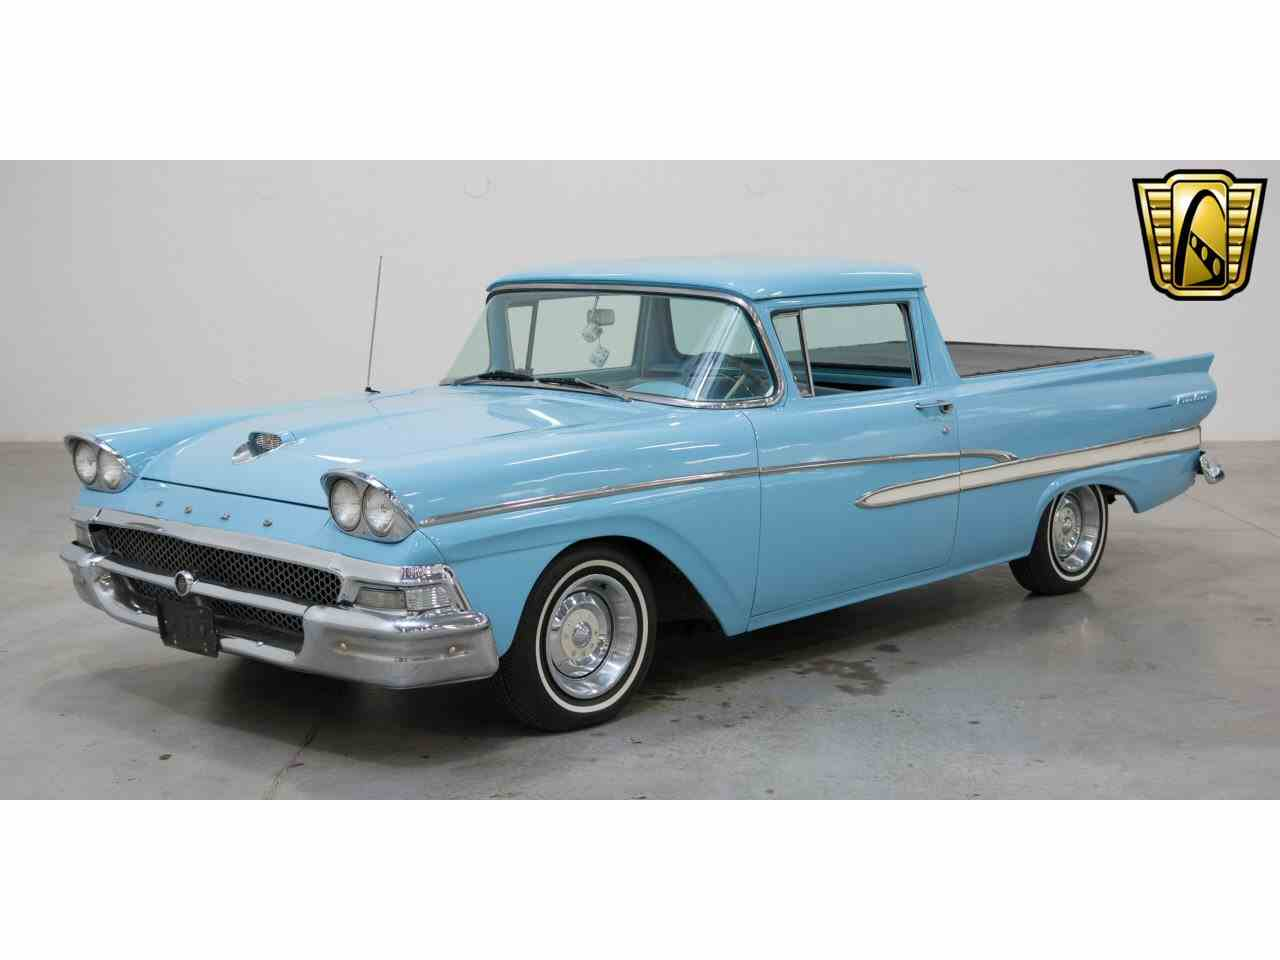 Large Picture of 1958 Ford Ranchero located in Wisconsin - $20,995.00 Offered by Gateway Classic Cars - Milwaukee - KH0V